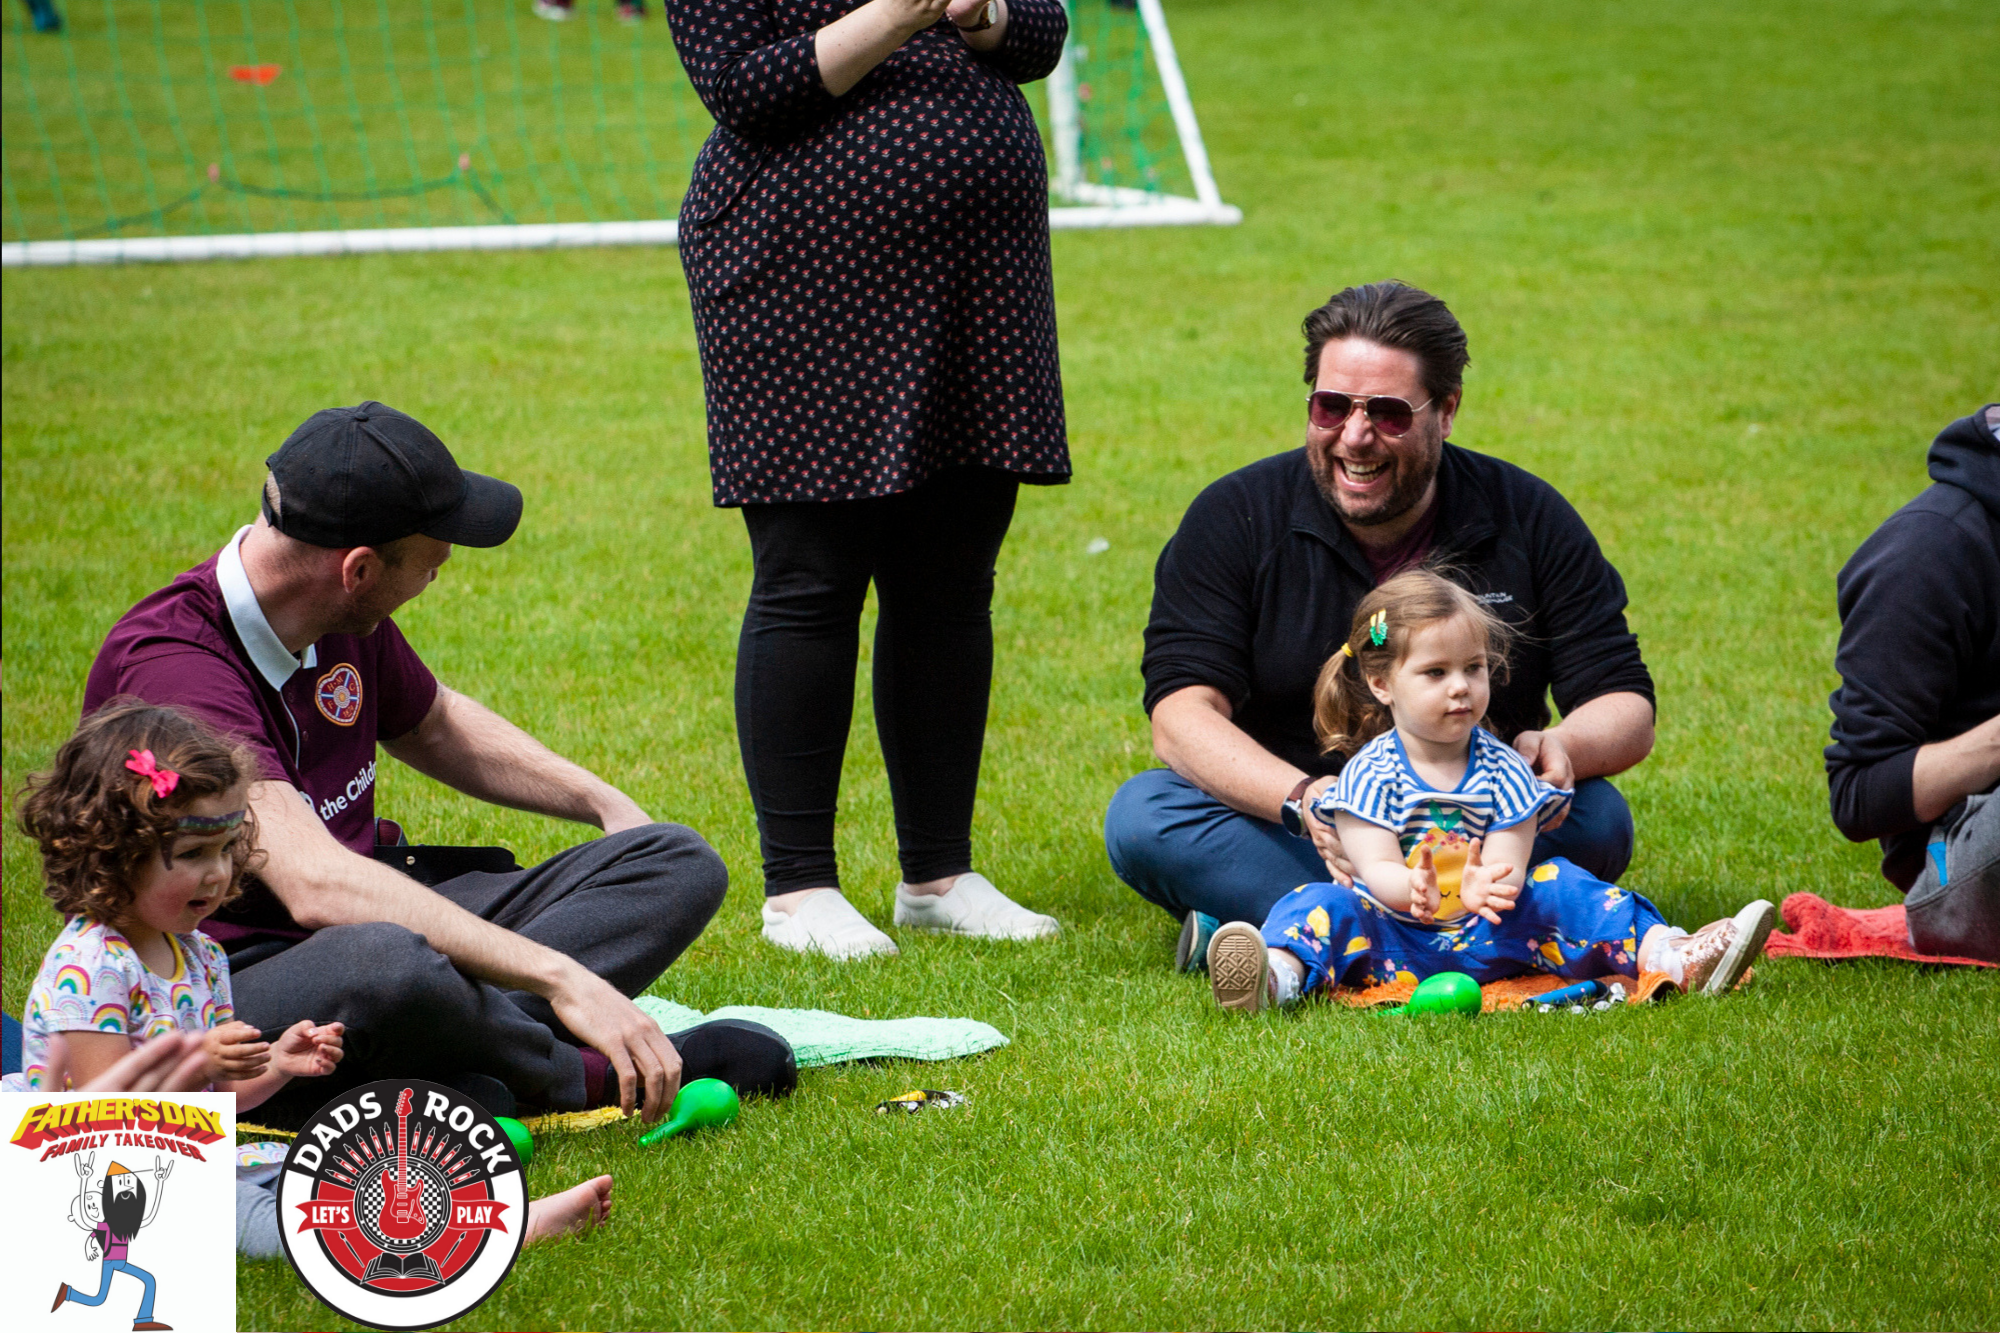 We had plenty of outdoor activities on the community pitch such as music with  Dads Rock Academy  and  Bambino Beats , and a story and song session with Dads Rock.